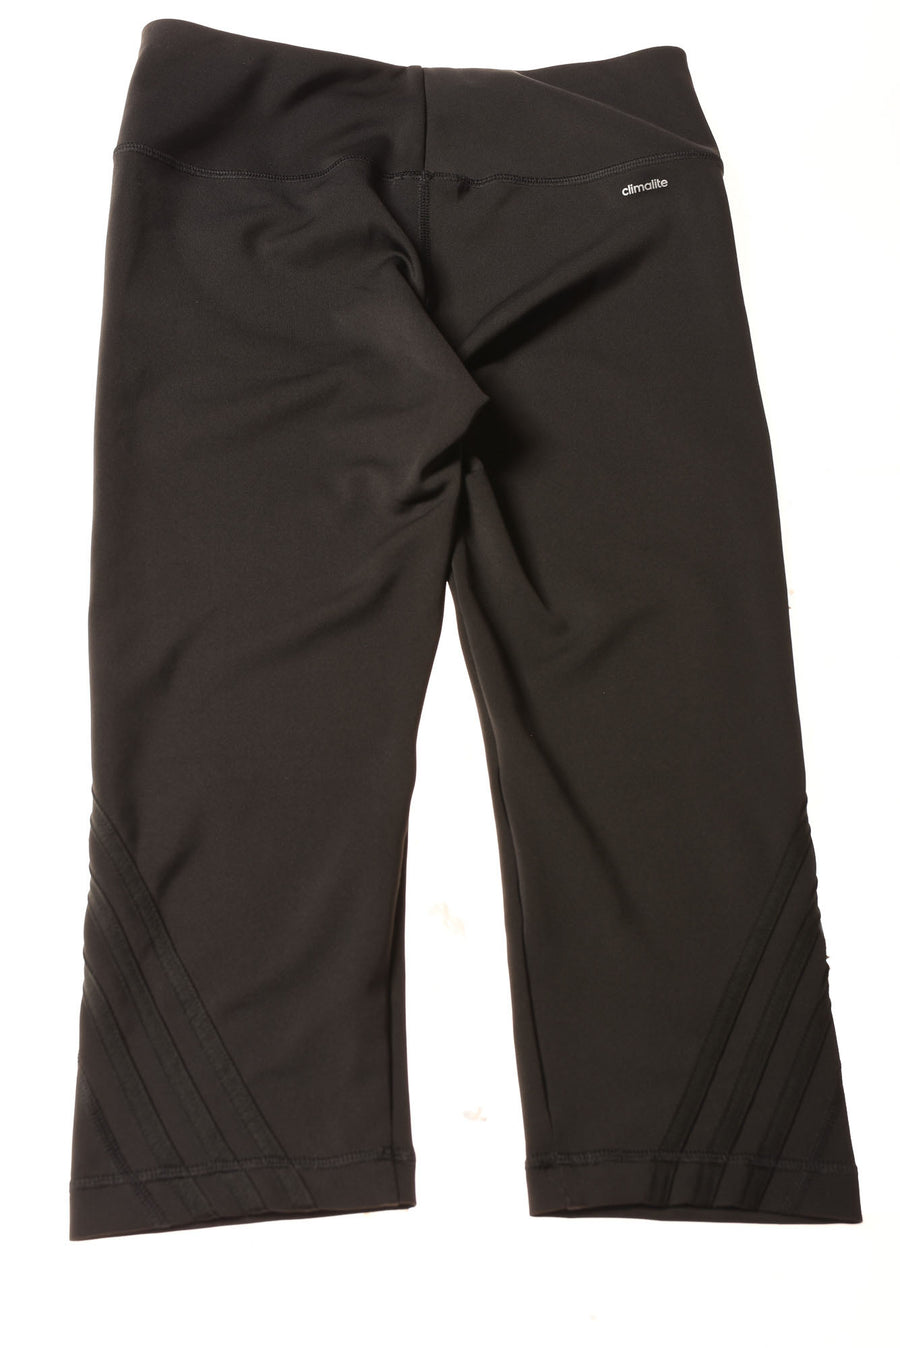 USED Adidas Women's Yoga Pants Medium Black